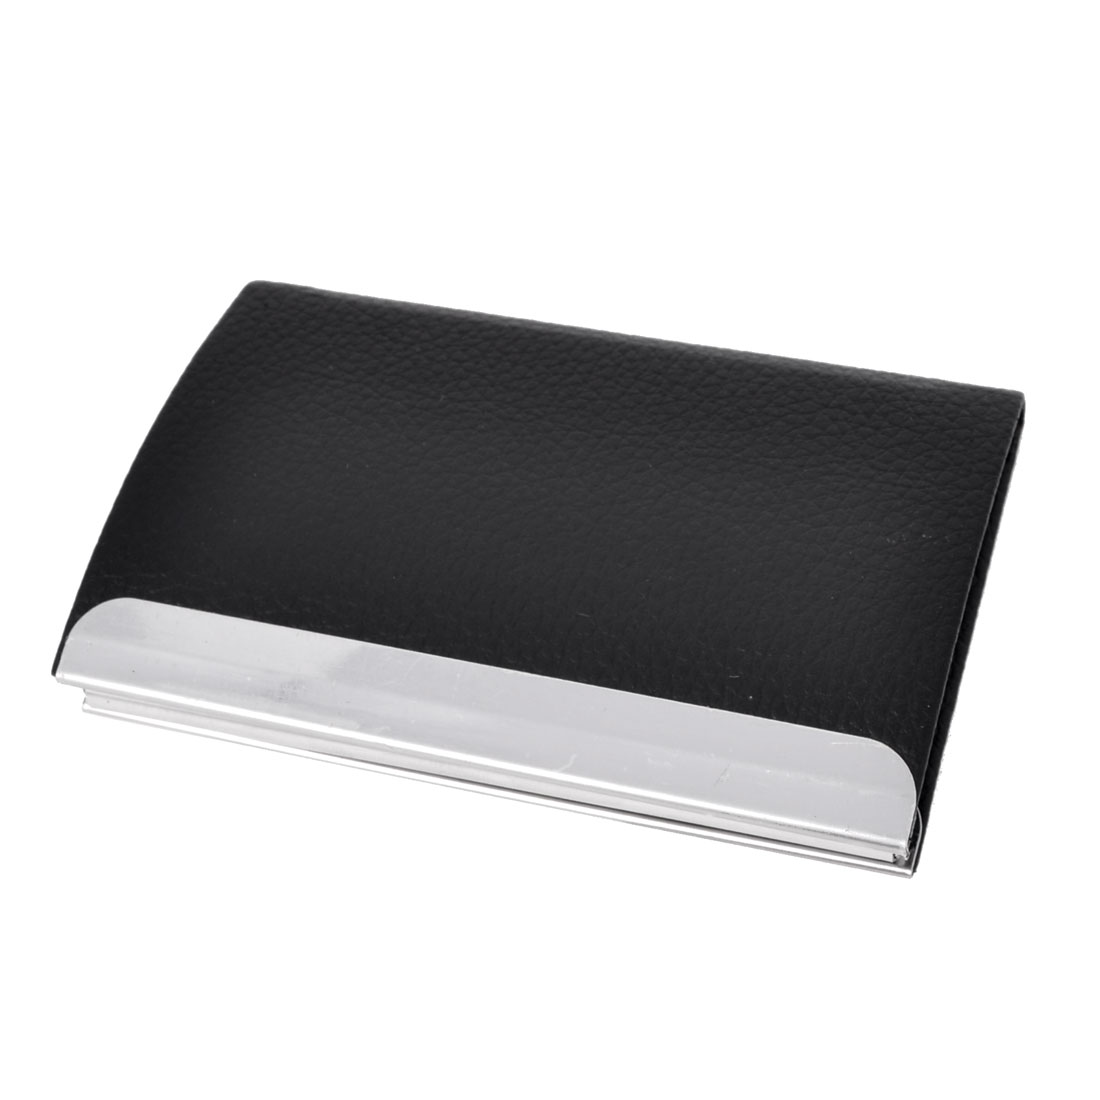 Black Litch Pattern Faux Leather Coated Business Card Holder Case